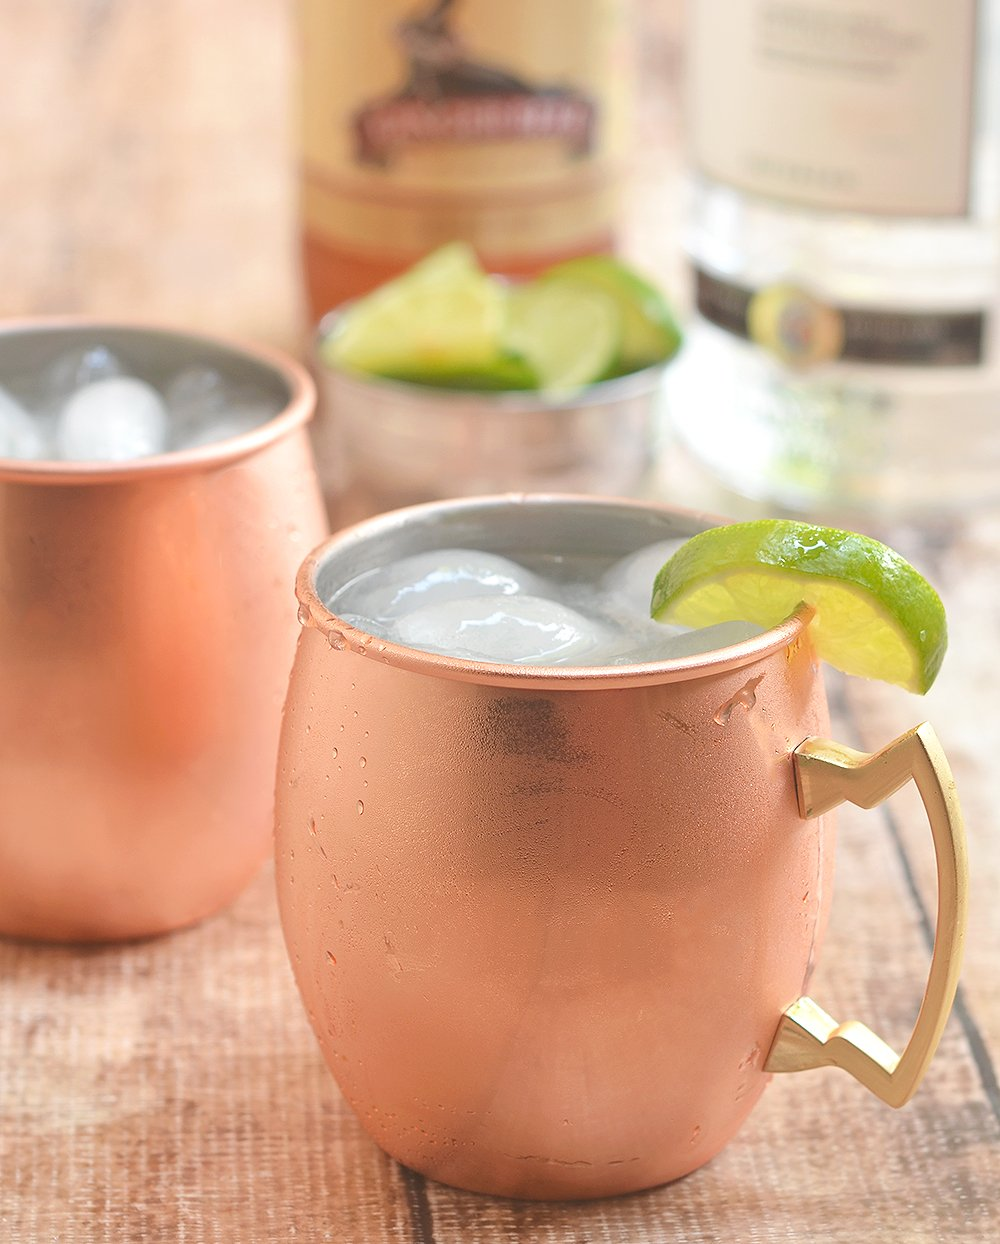 Serve up a frosty copper mug filled with a spicy, refreshing classic Moscow mule.